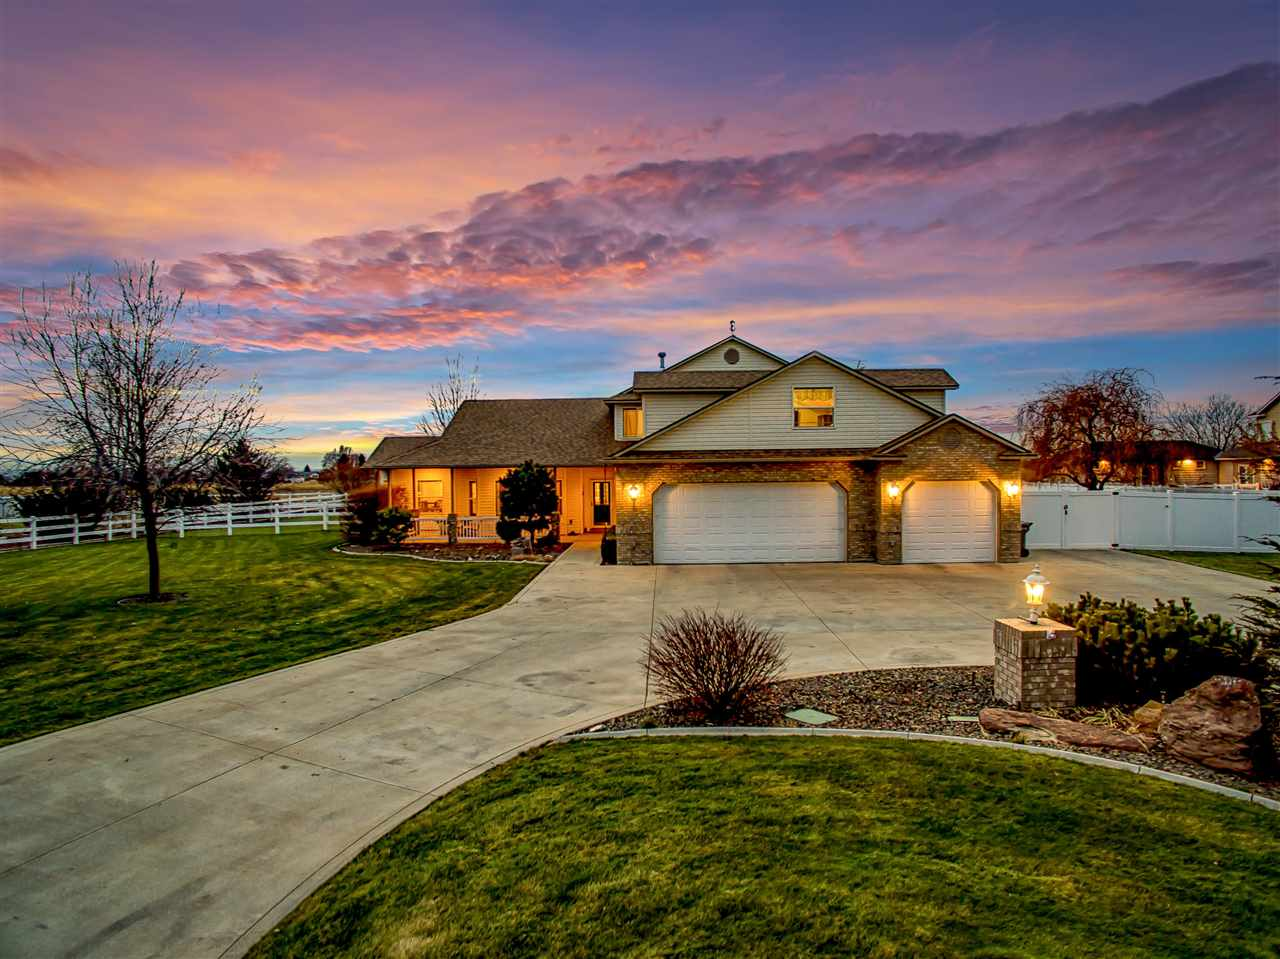 Embrace the serenity on this lush 1-acre property that maximizes privacy & views on the edge where Meridian & Nampa connect. Comfortably situated at the end of a cul-de-sac with no rear neighbors, this home offers peace & quiet to relax & recharge. Spacious design hosts two master suites + a bonus room that can be used as a 5th bedroom. Family sized kitchen features stainless steel appliances & custom cabinetry with pull out shelving. Hardwood floors flow through the living area, mudroom, & formal dining.